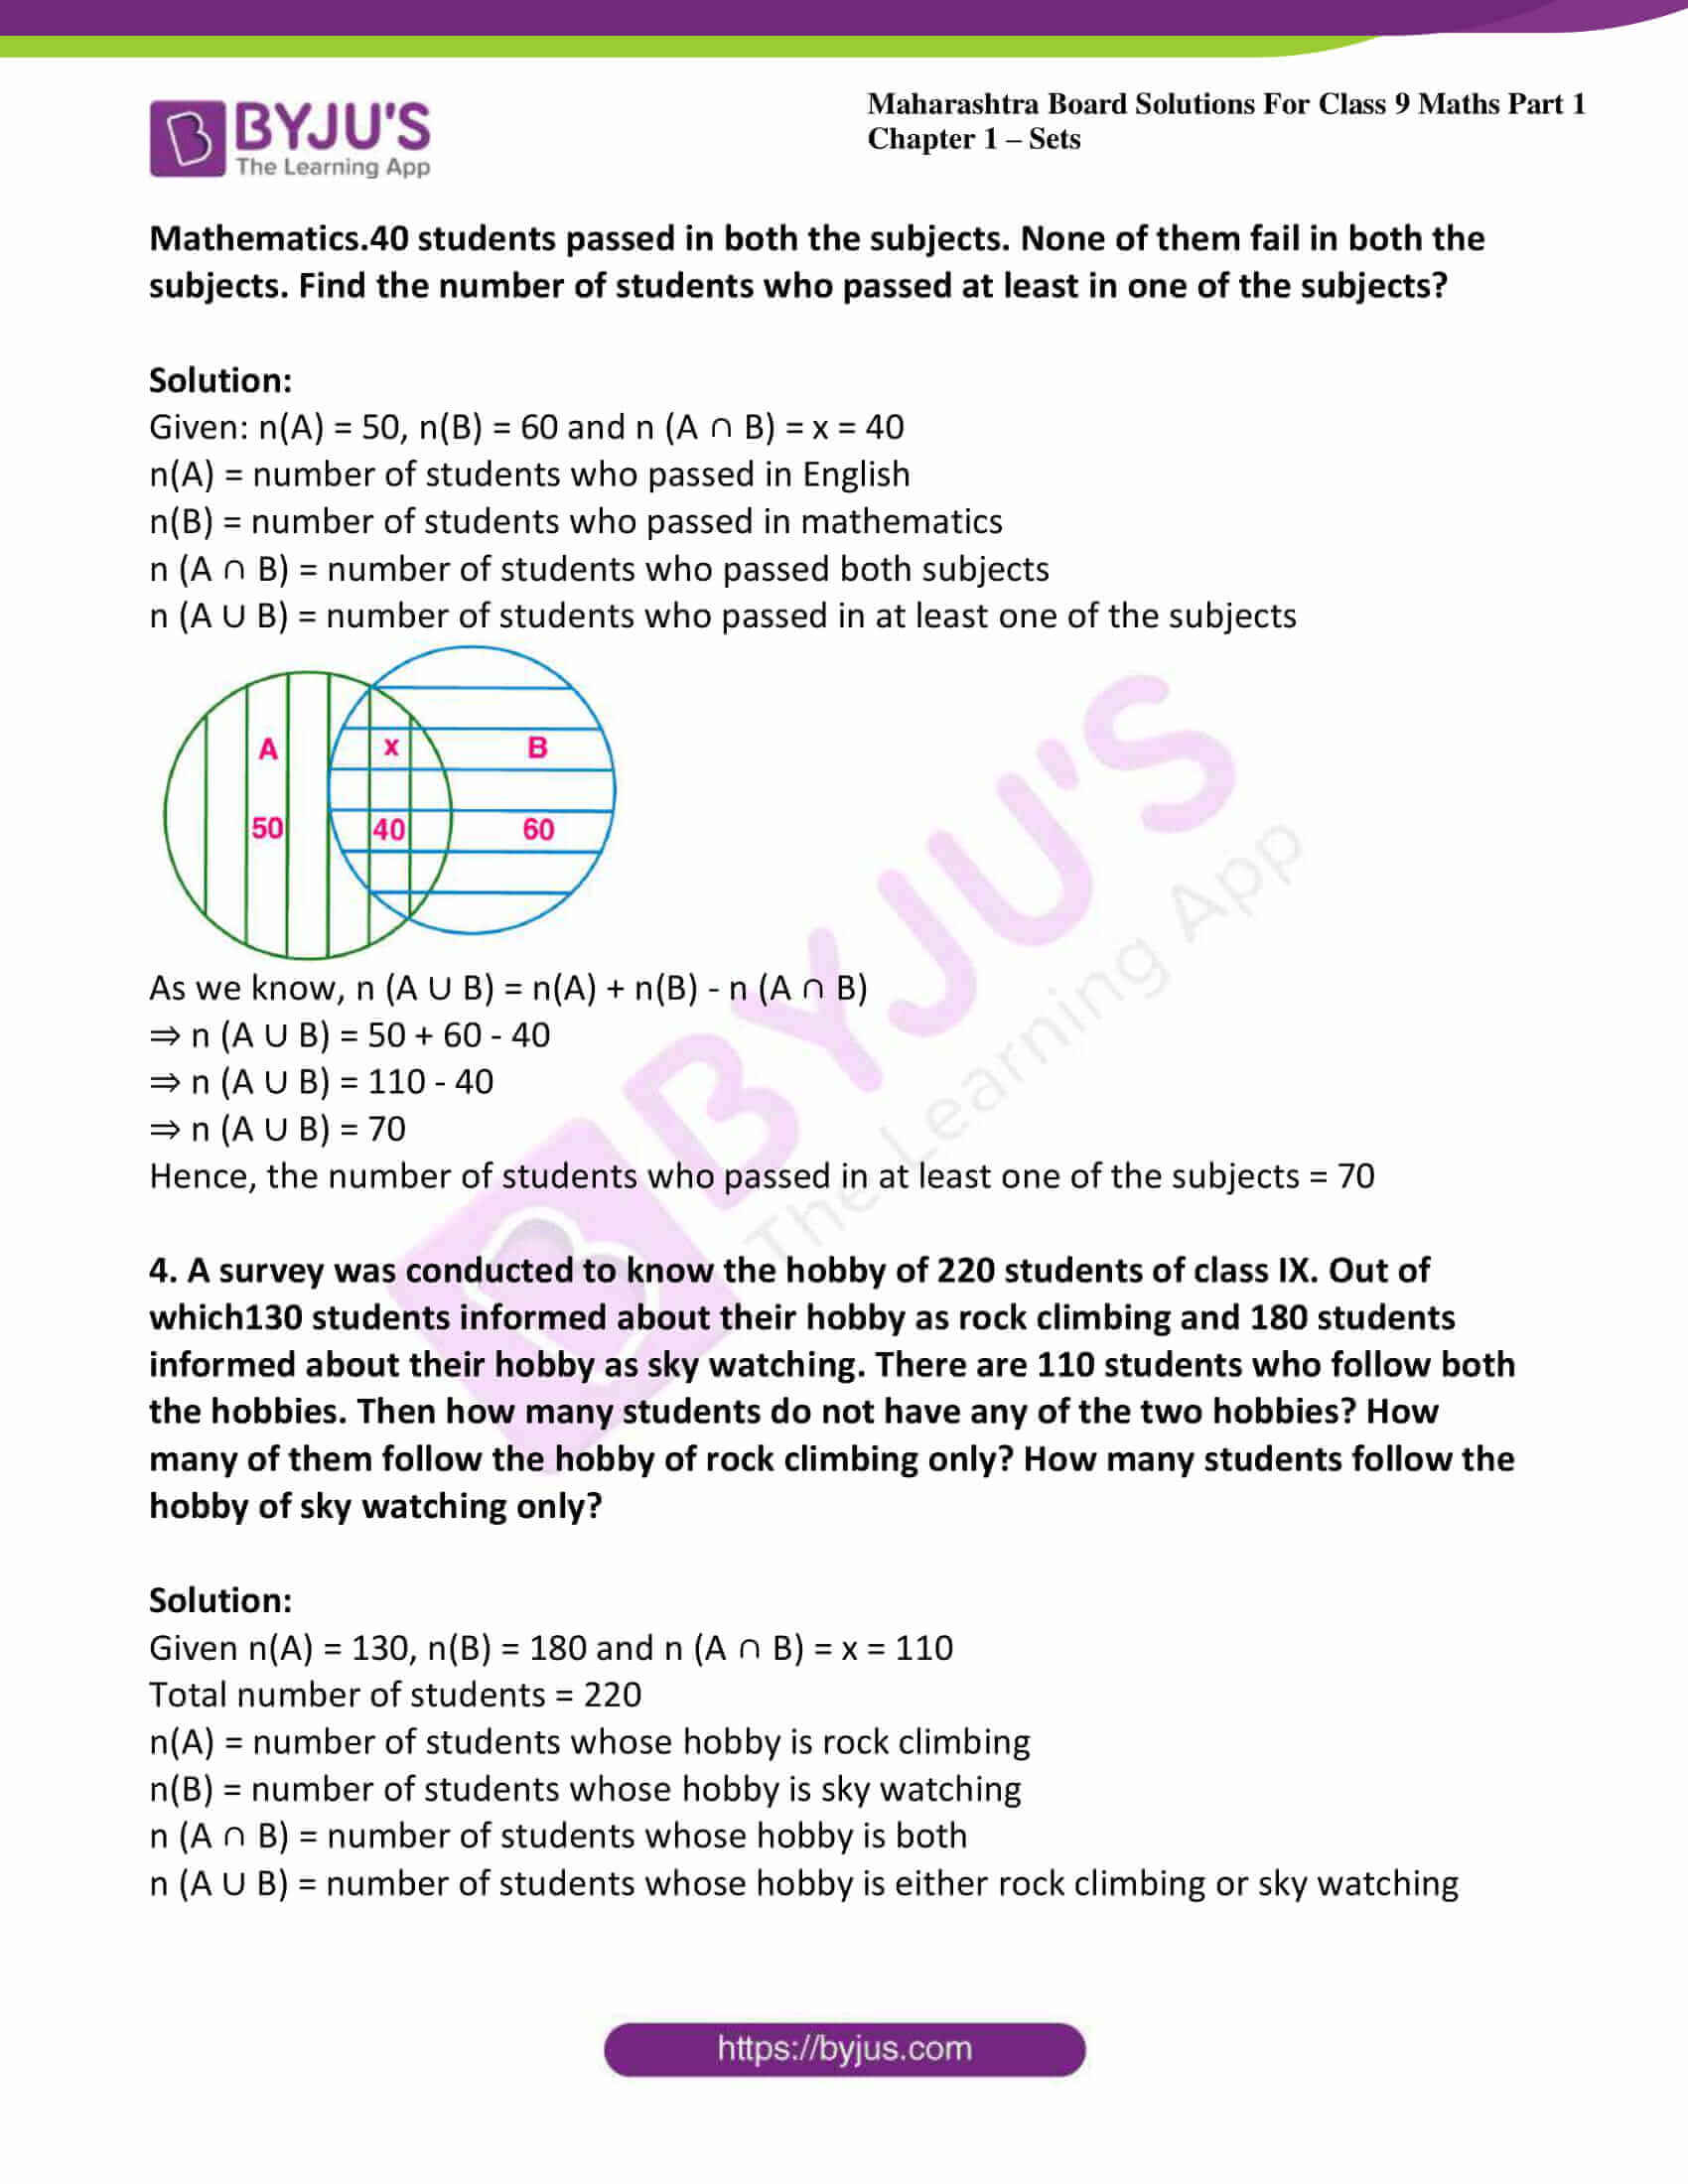 msbshse sol class 9 maths part 1 chapter 1 sets 14